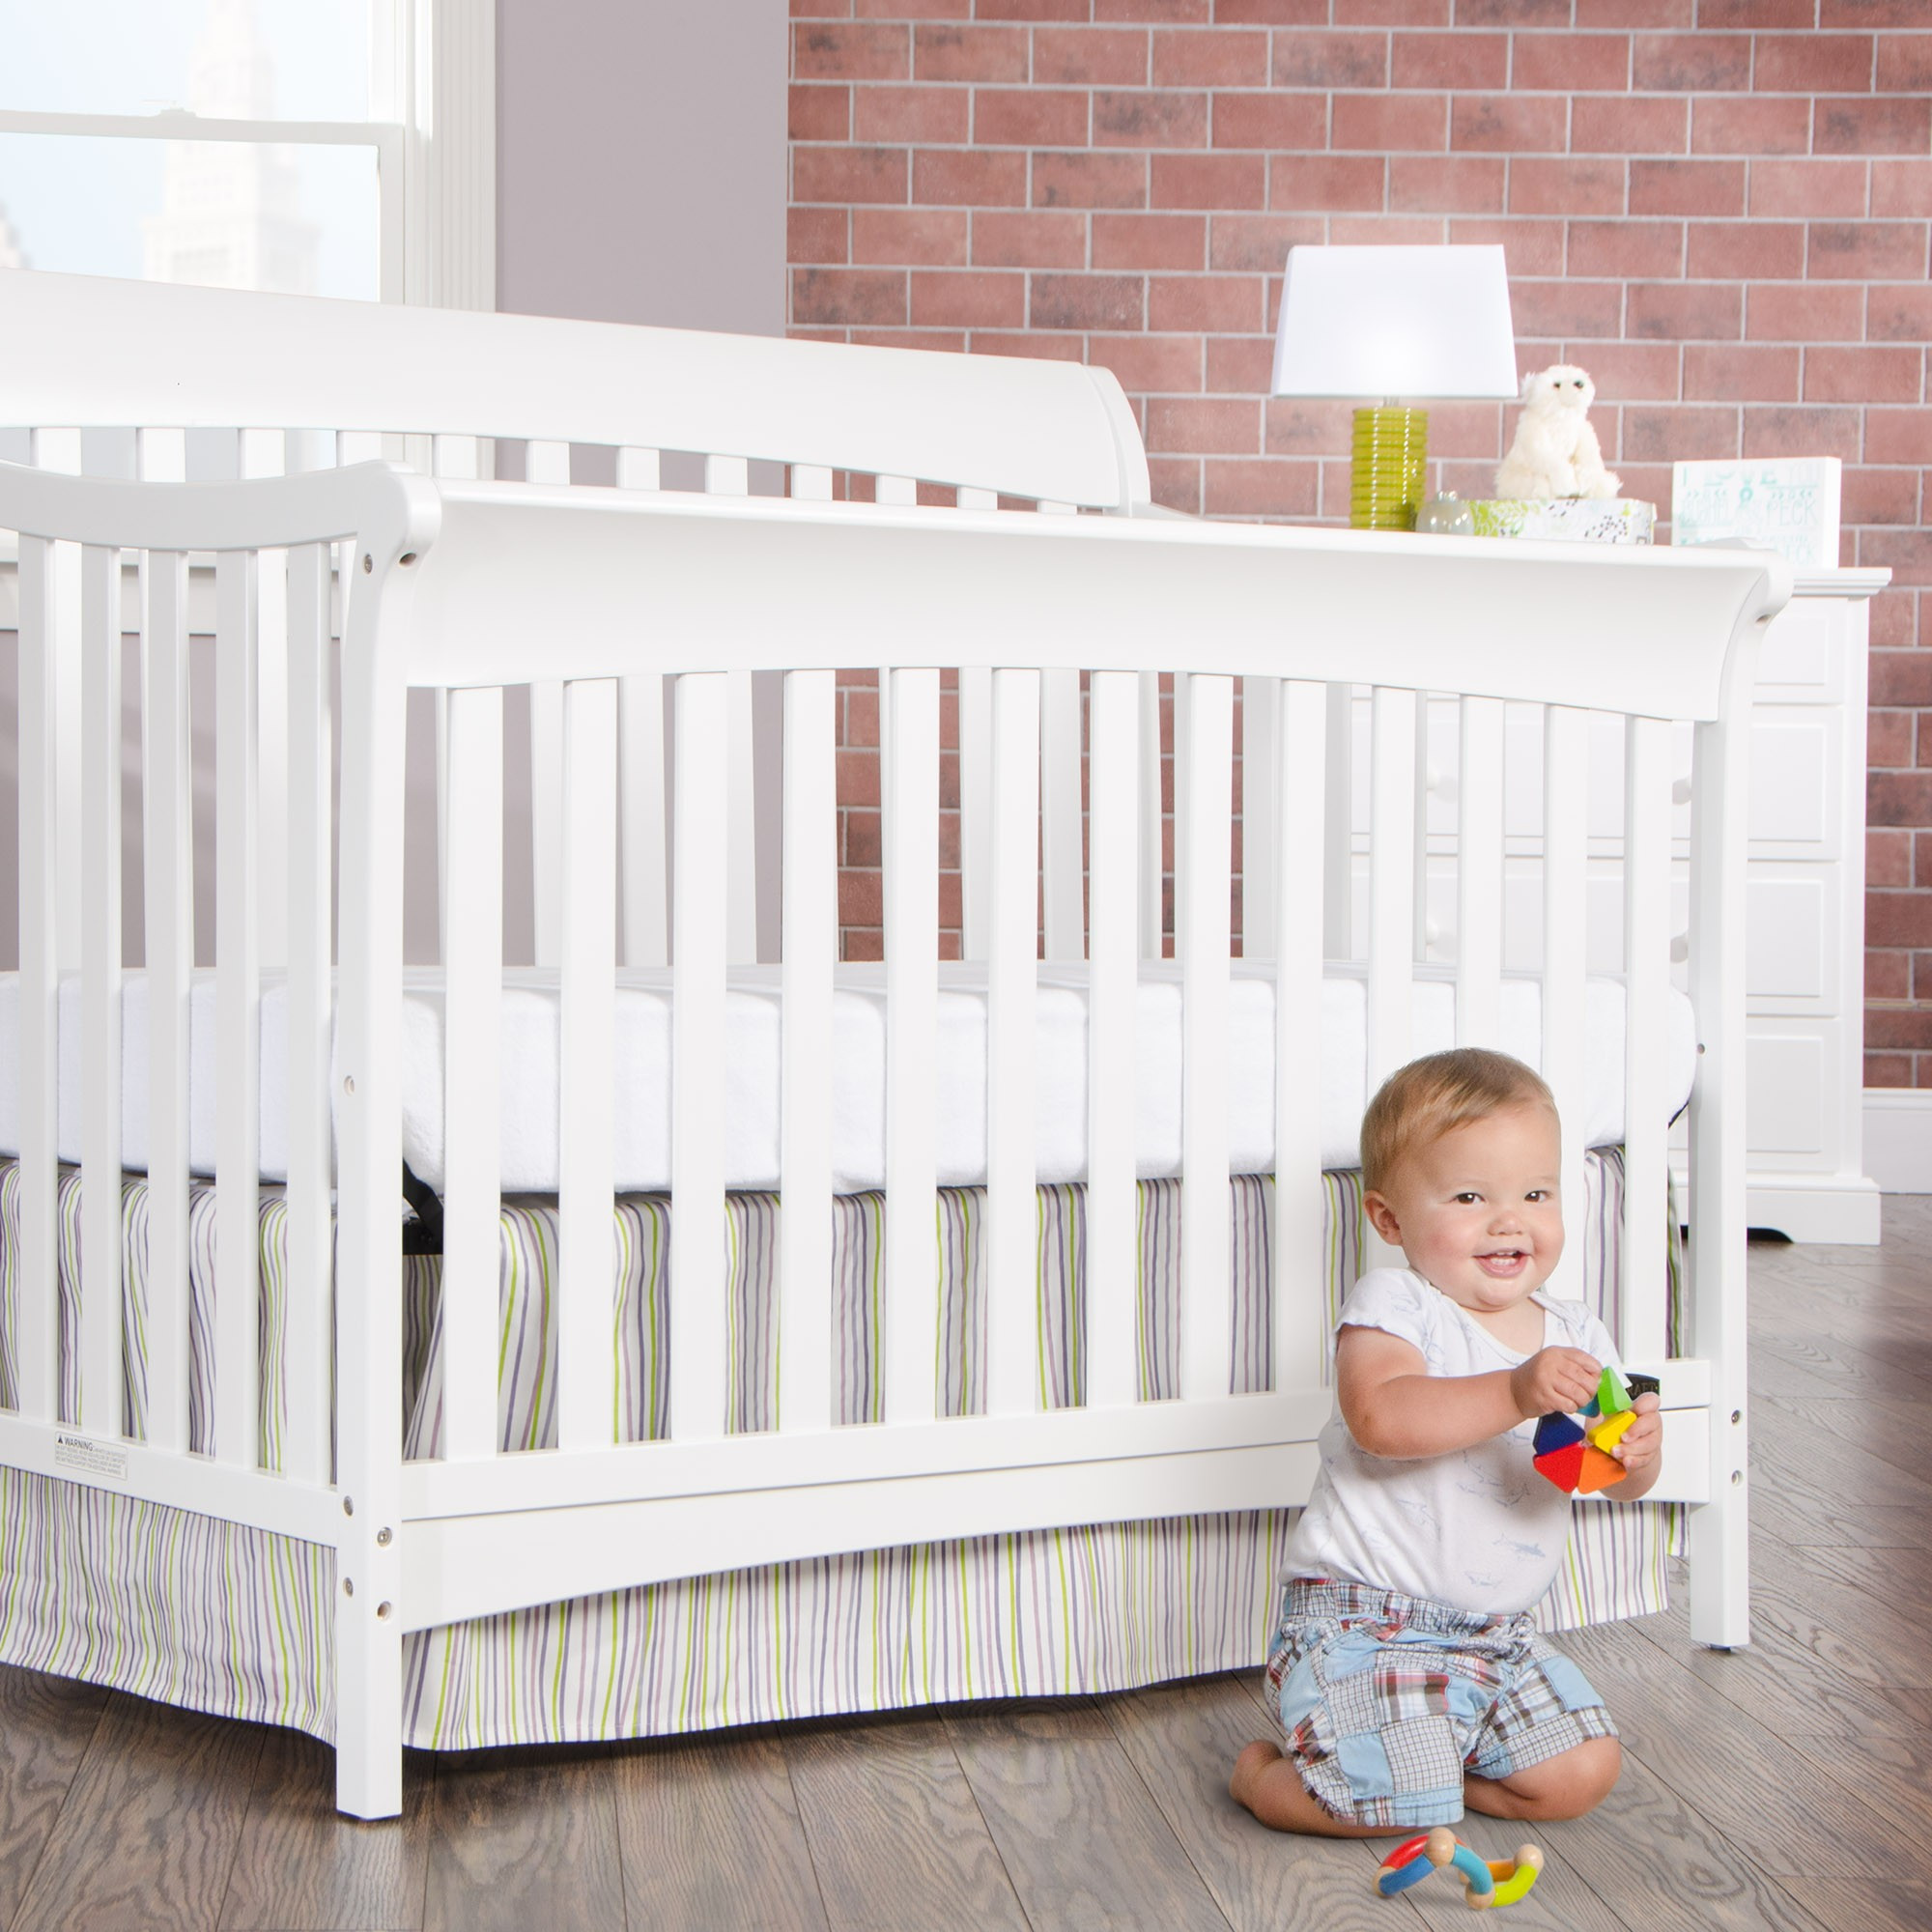 Child Craft Coventry Crib  Coventry Full Size 4 in 1 Convertible Child Craft Crib